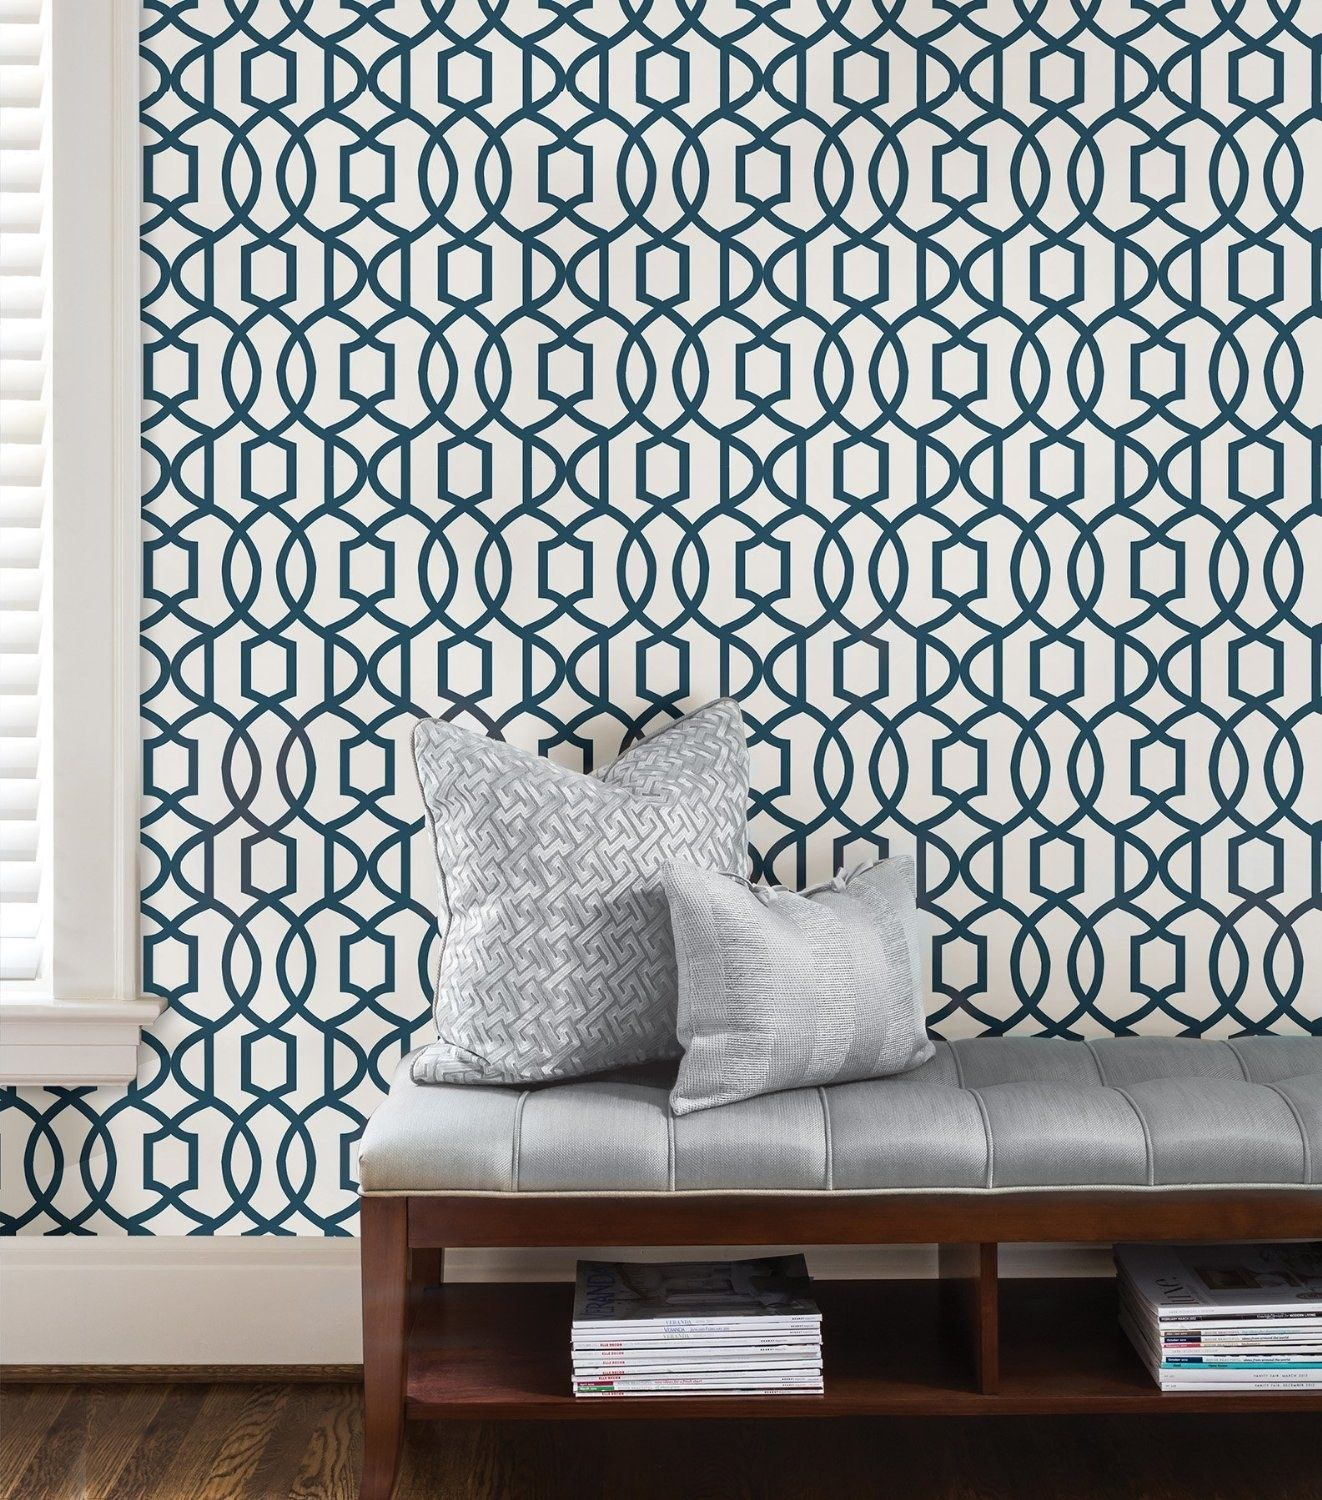 Or Create A Charming Accent Wall With Peel And Stick Paper That Can Be Easily Removed Home Depot Wallpaper Peel And Stick Wallpaper Trellis Wallpaper